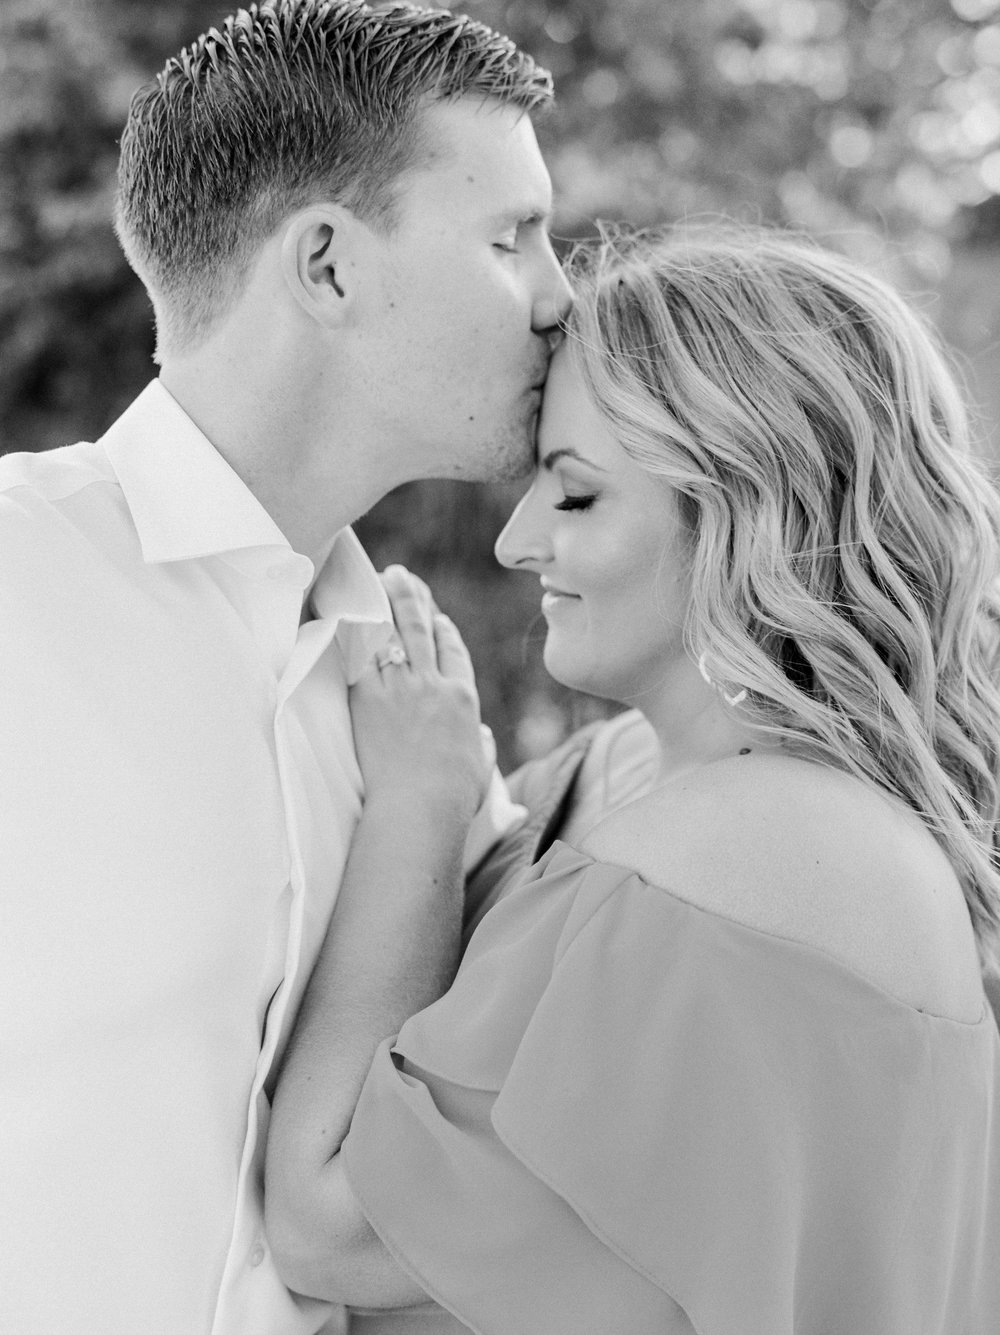 mckinney-quary-engagements-ar-photography-amanda-alex-80.jpg